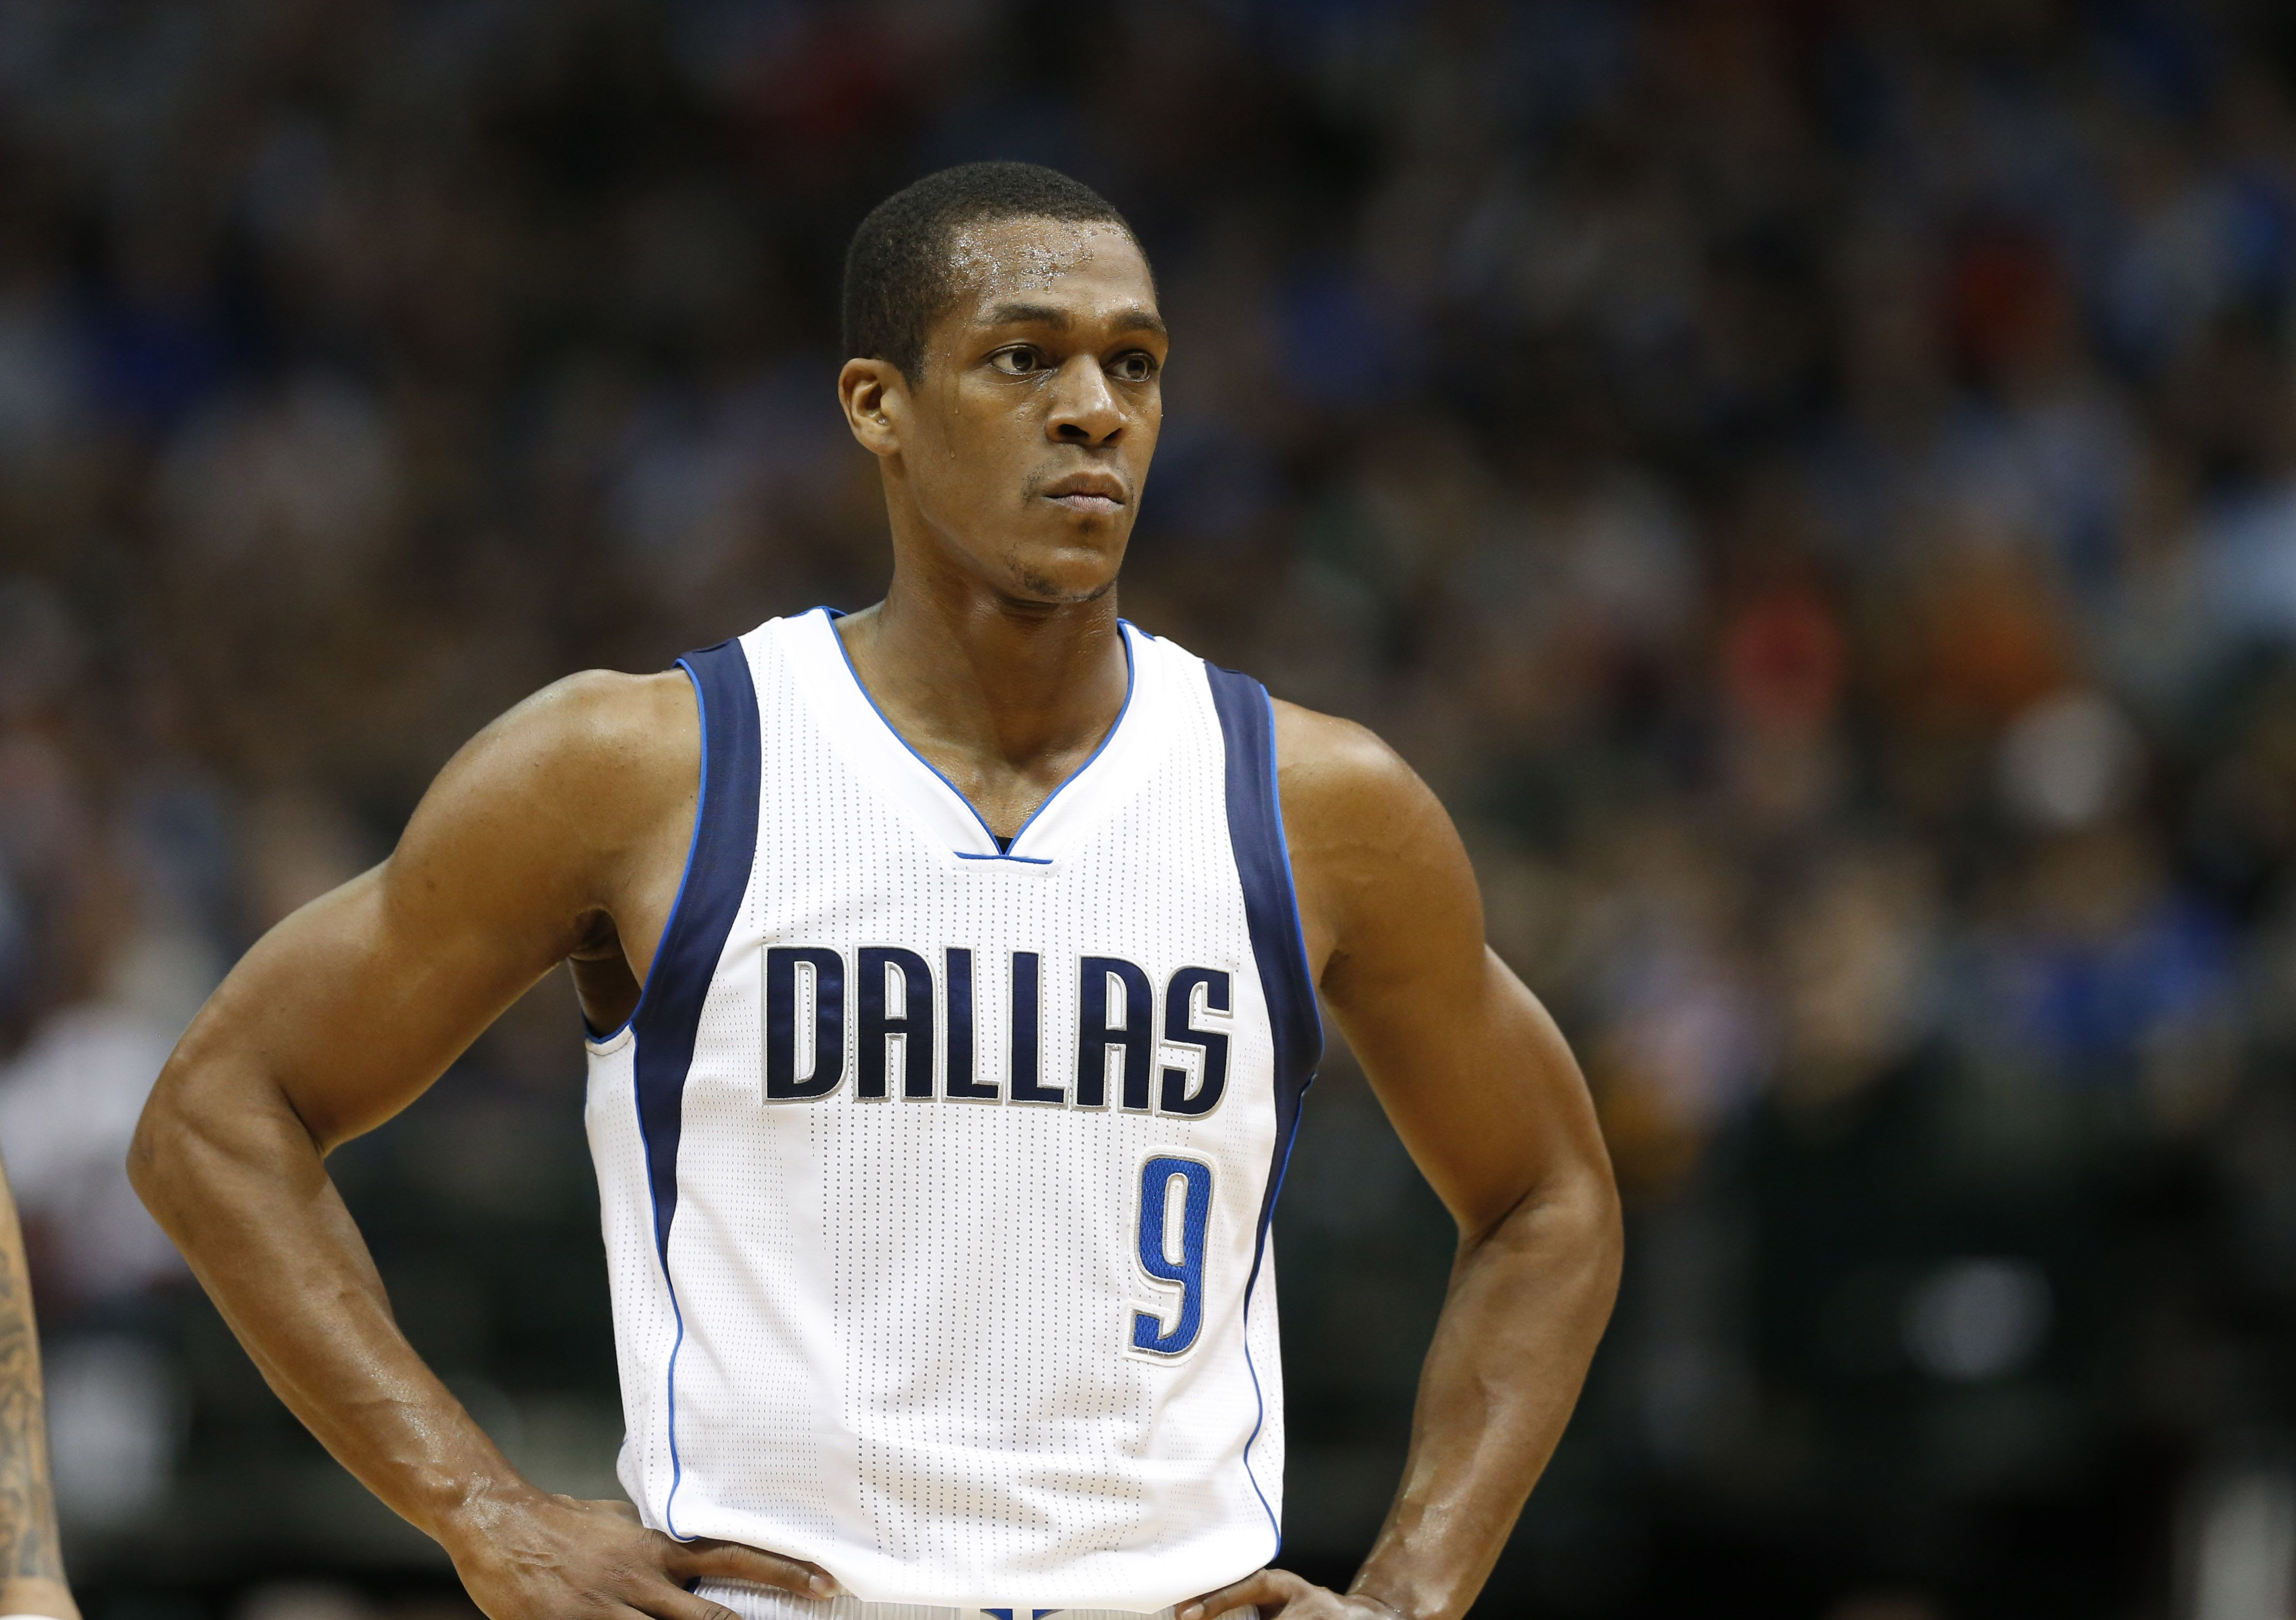 Did Lakers HC Byron Scott just rule out signing Rajon Rondo